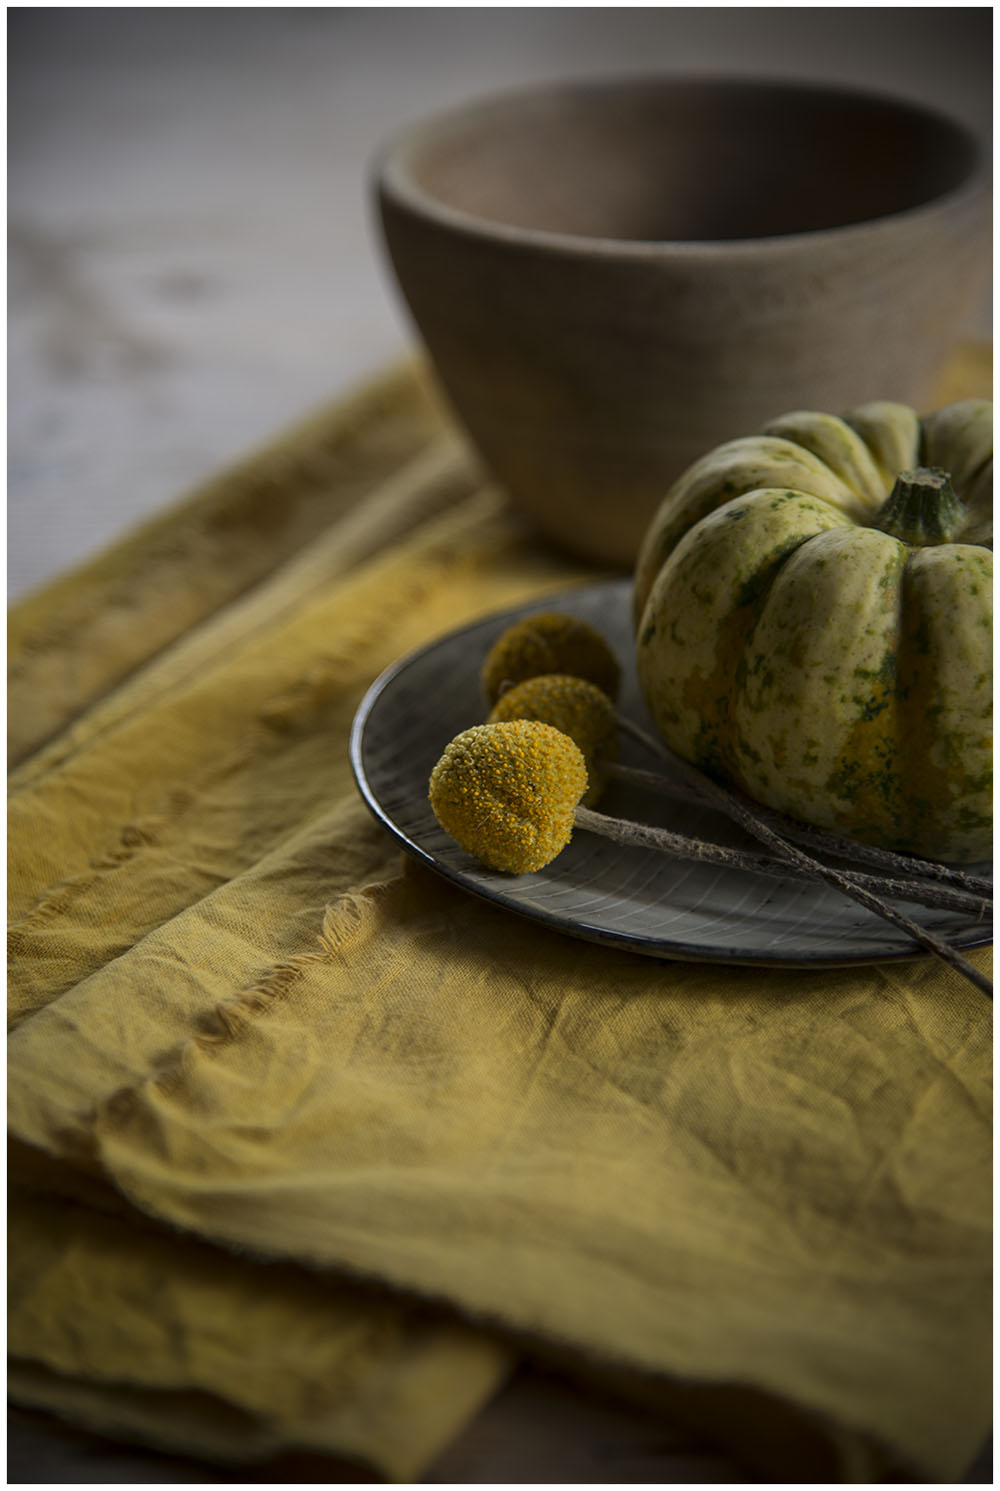 Turmeric and tea dyed napkins